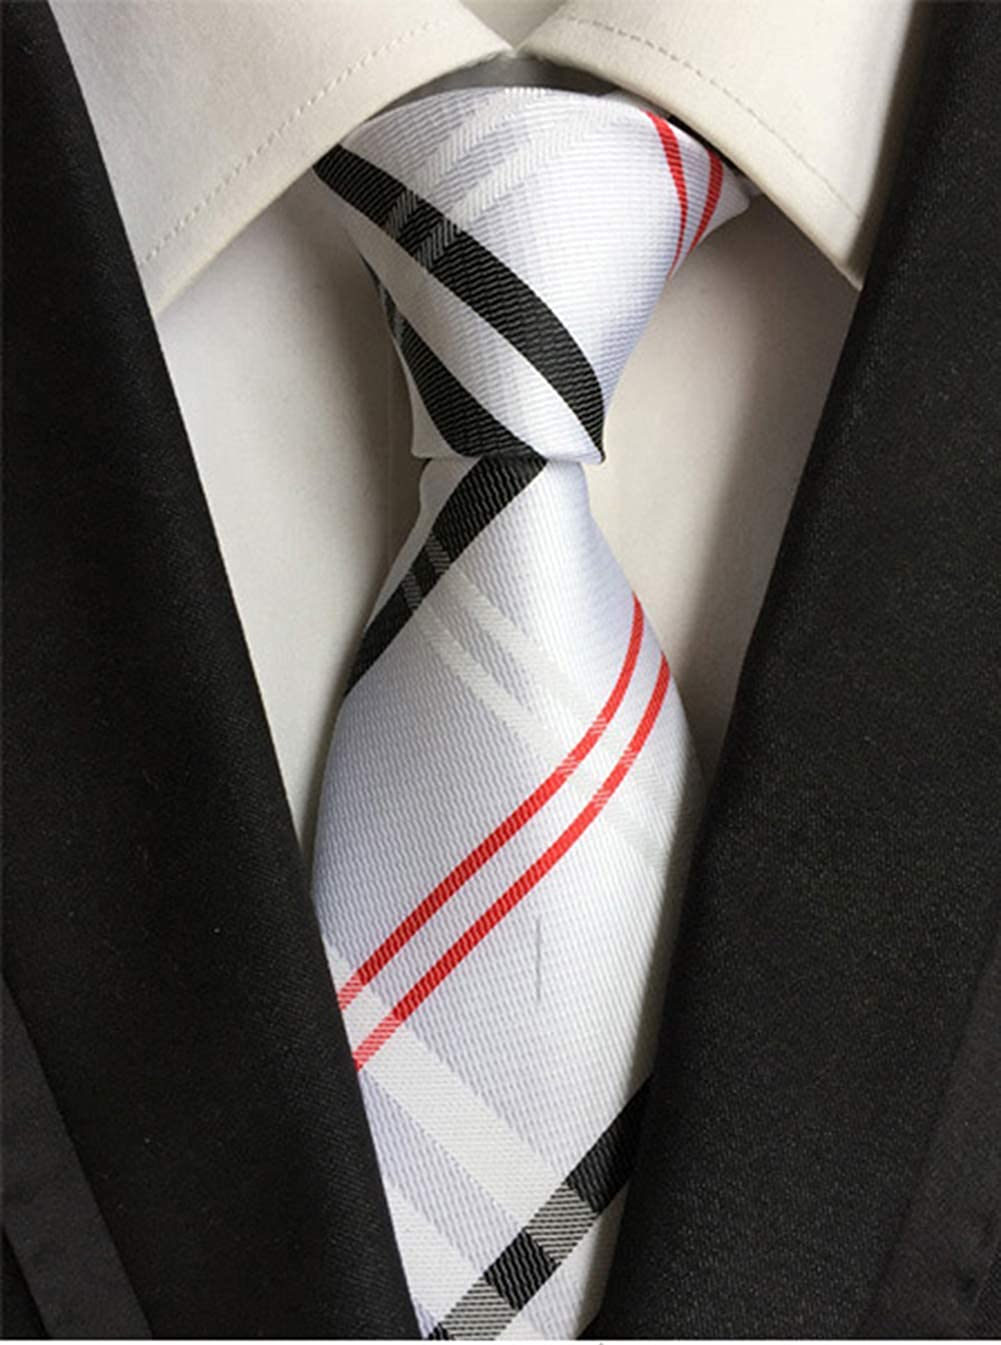 MOHSLEE Mens Striped Plaid Suit Tie Handky Skinny Necktie Pocket Square Gift Set